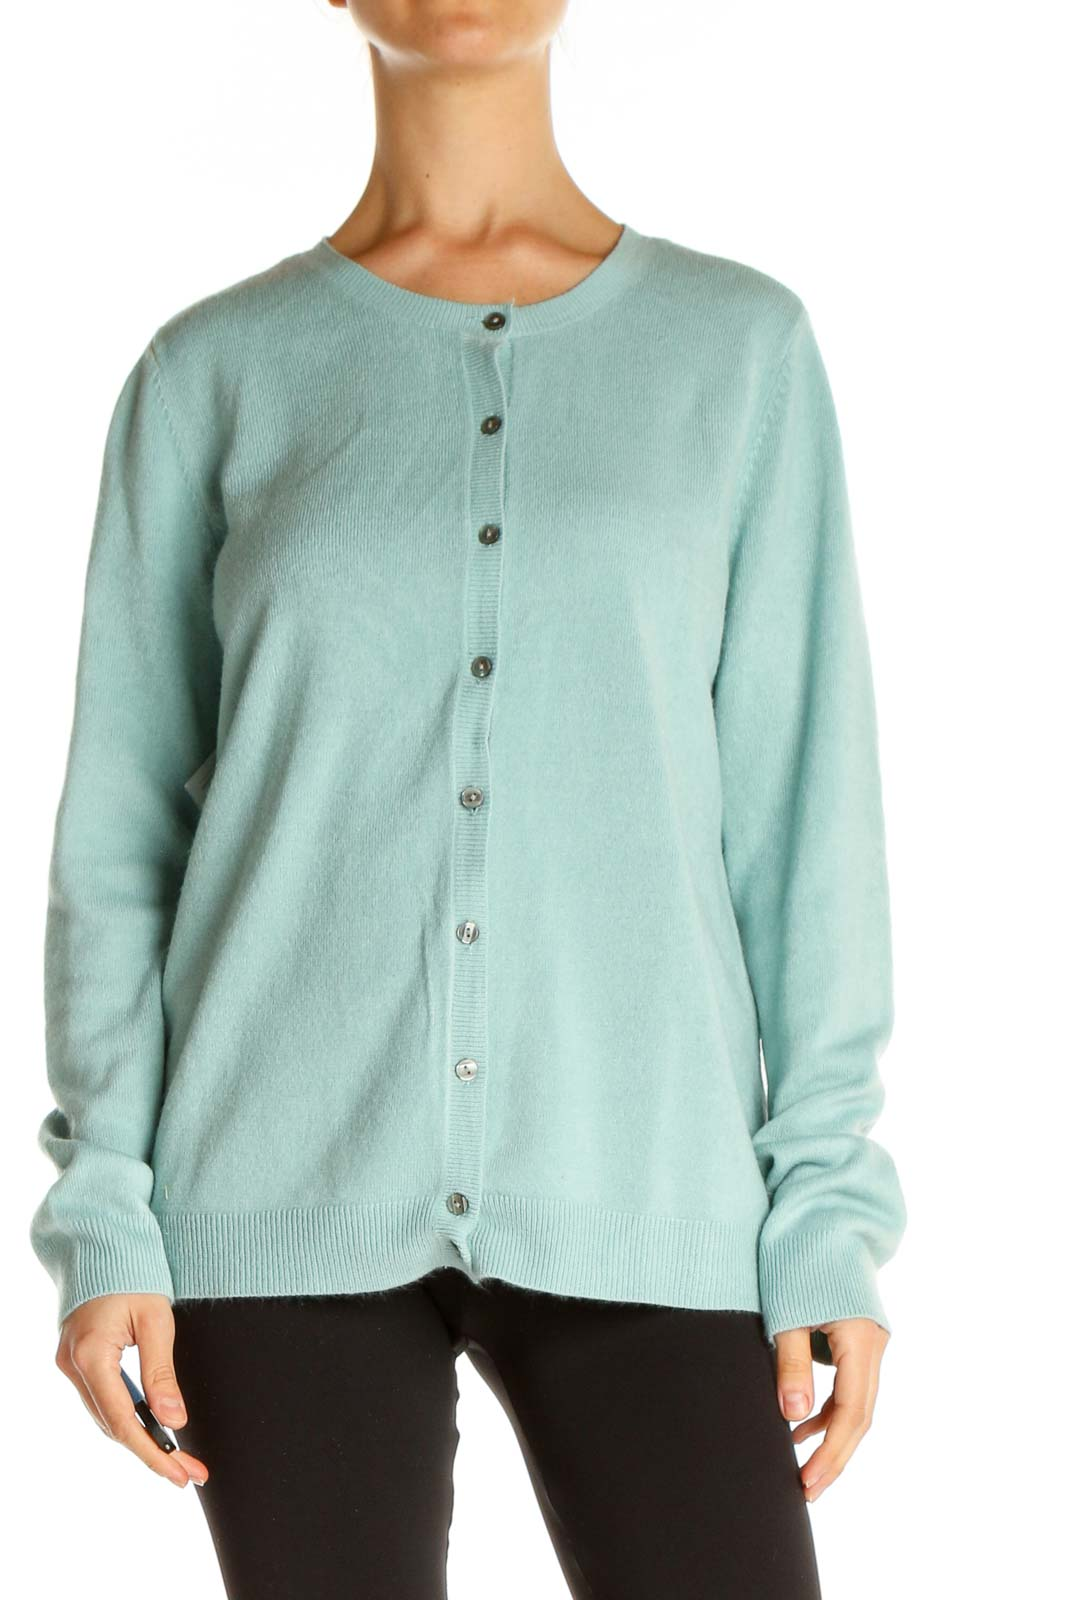 Blue Solid All Day Wear Sweater Front